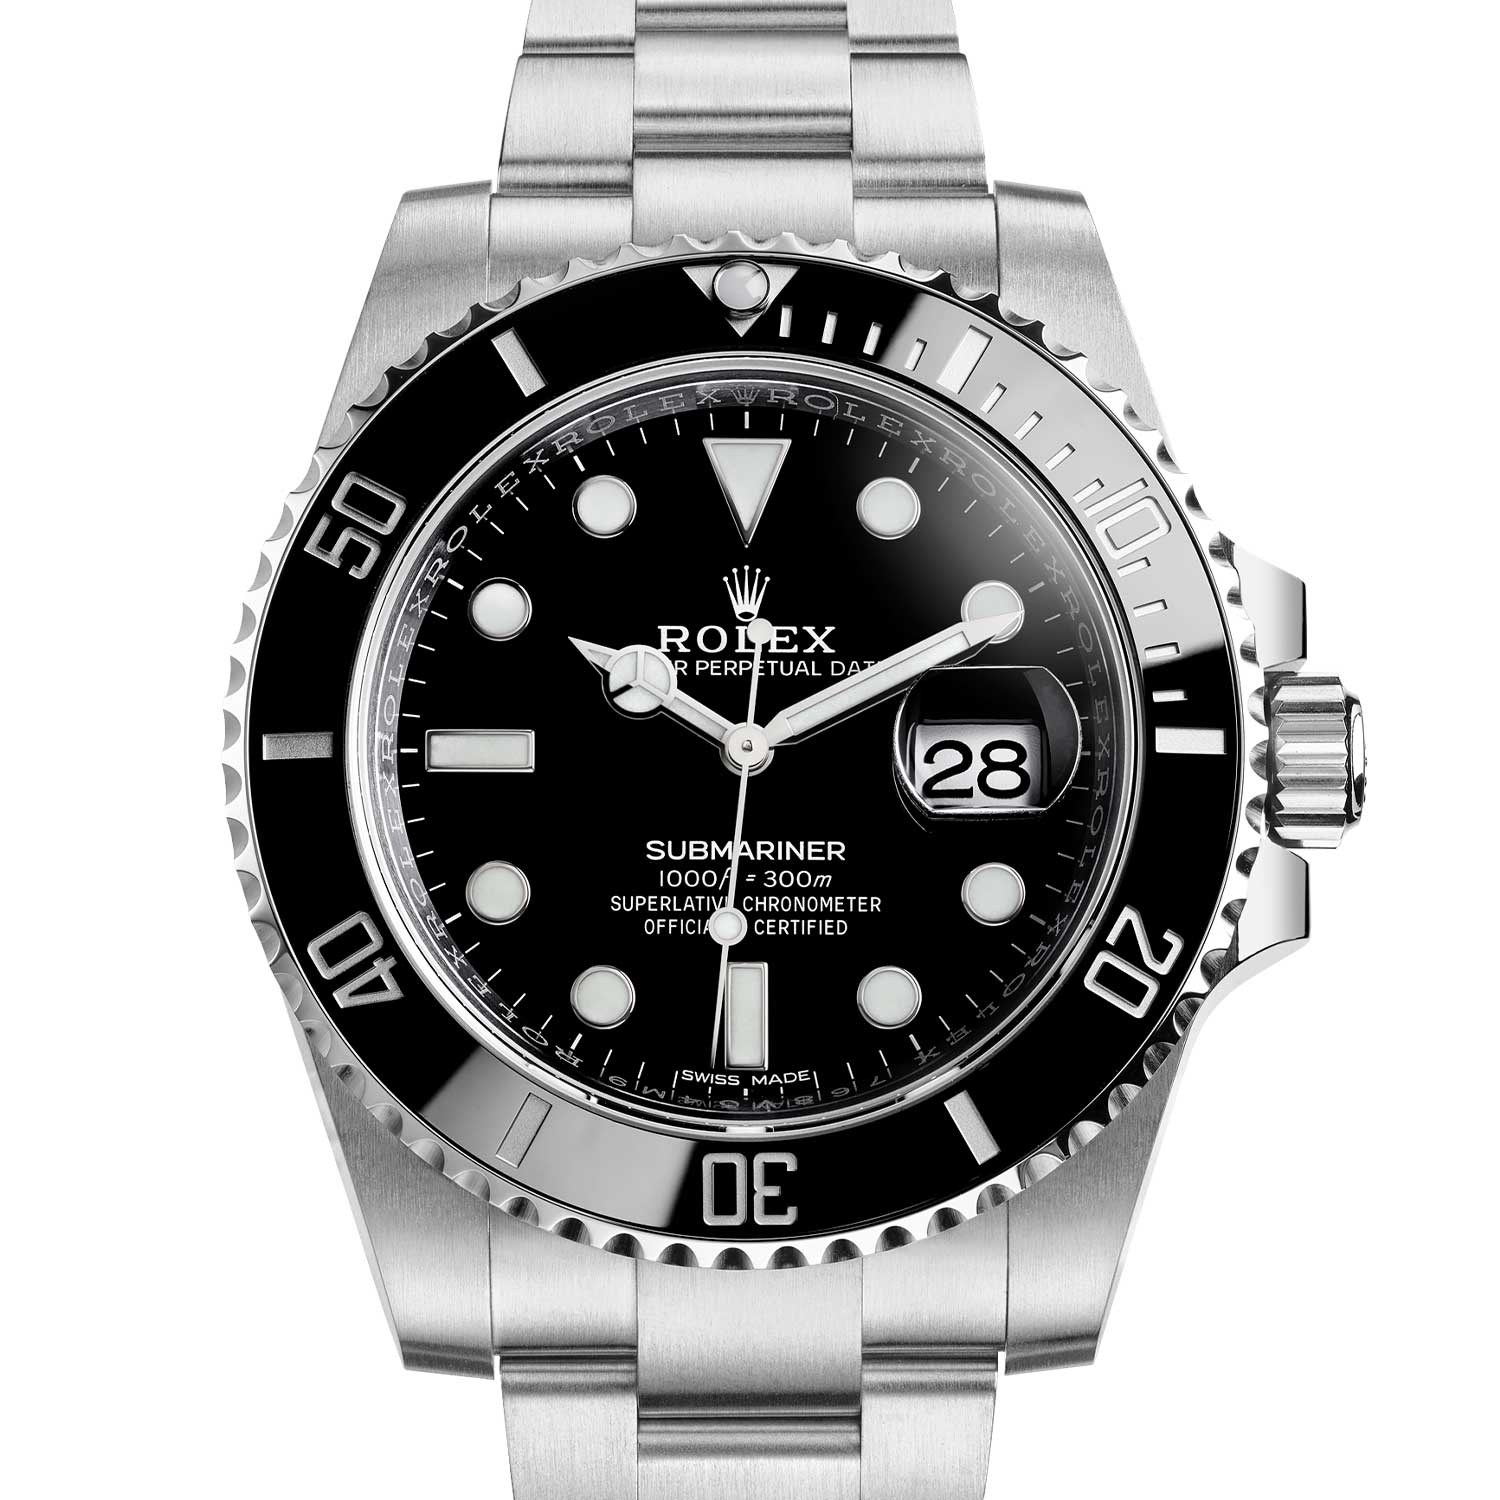 2010: Ref. 116610 date model in steel, fitted with a Cerachrom bezel in ceramic.